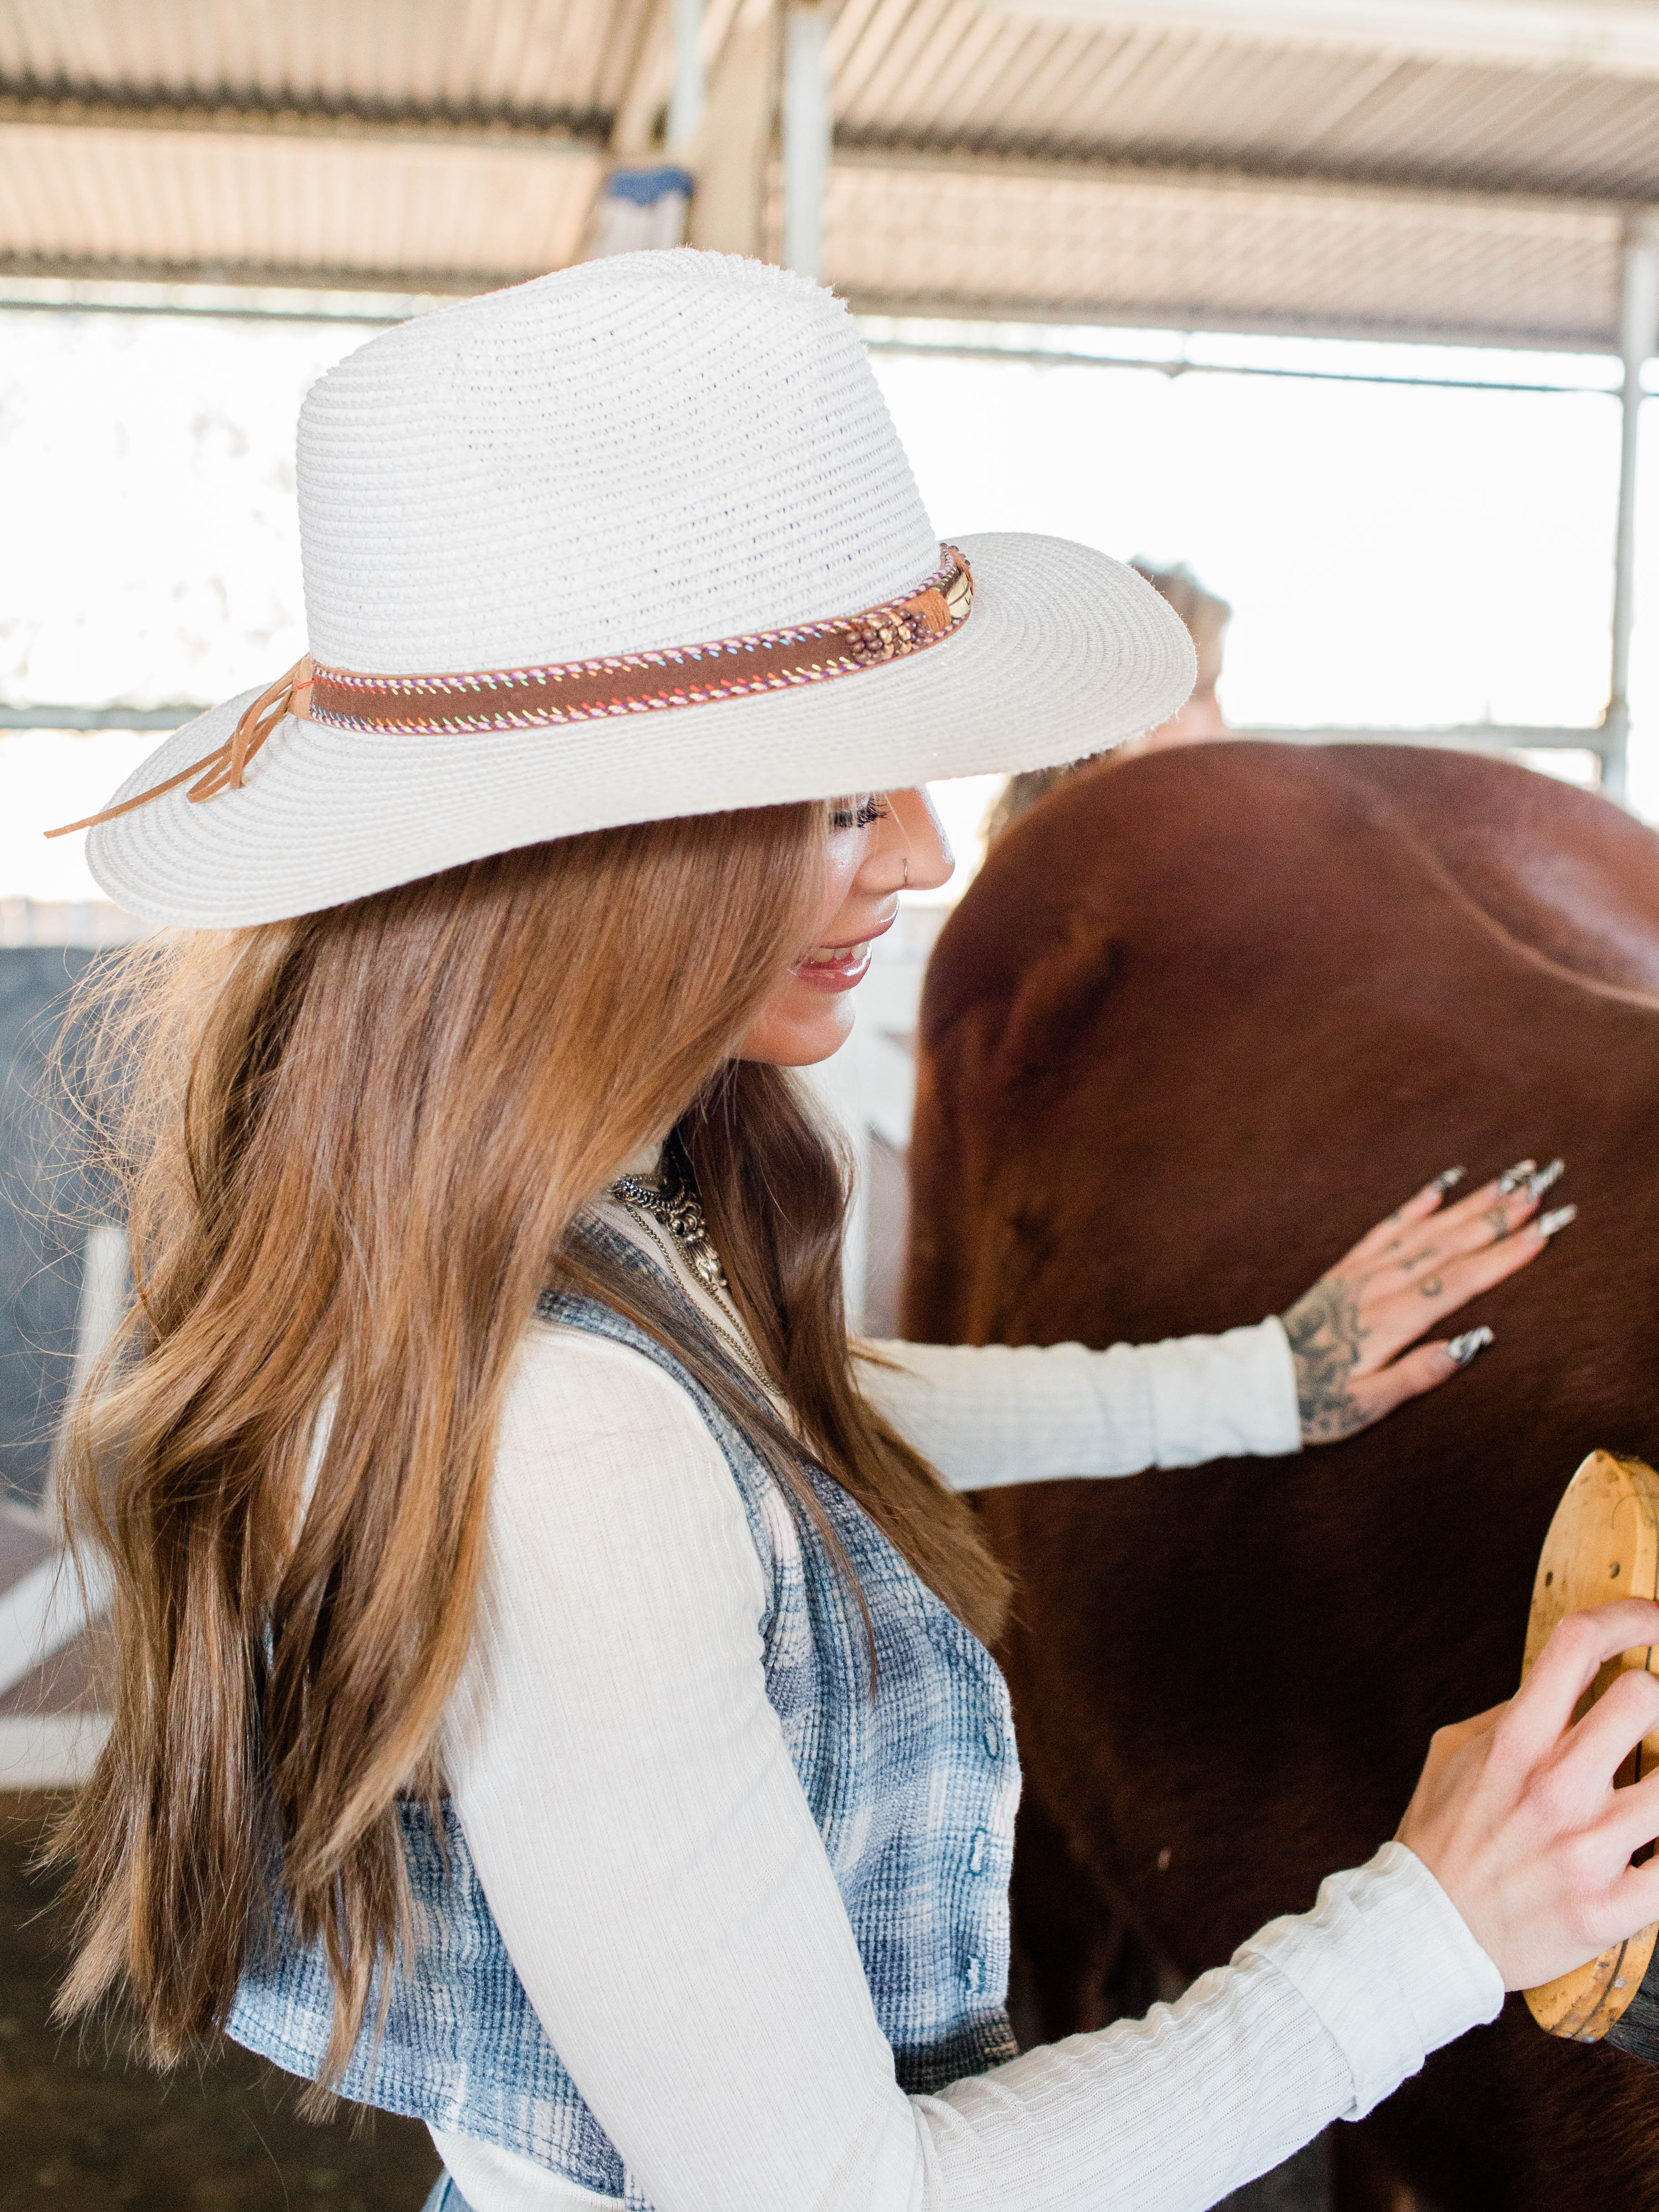 Learn how to properly groom a horse.